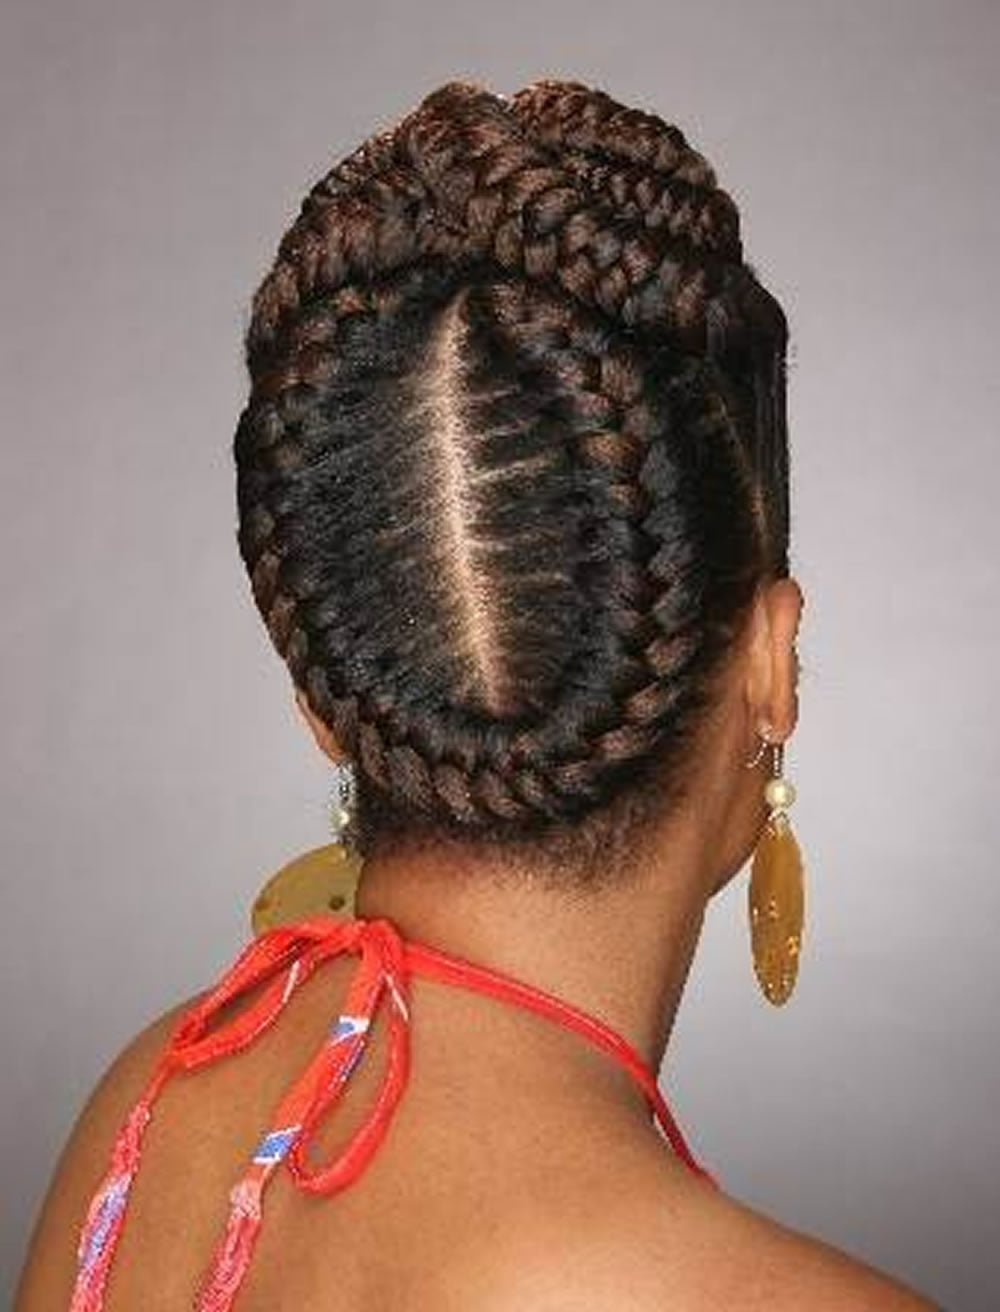 20 Best African American Braided Hairstyles for Women 2020 - 2021 - Page 3 - HAIRSTYLES